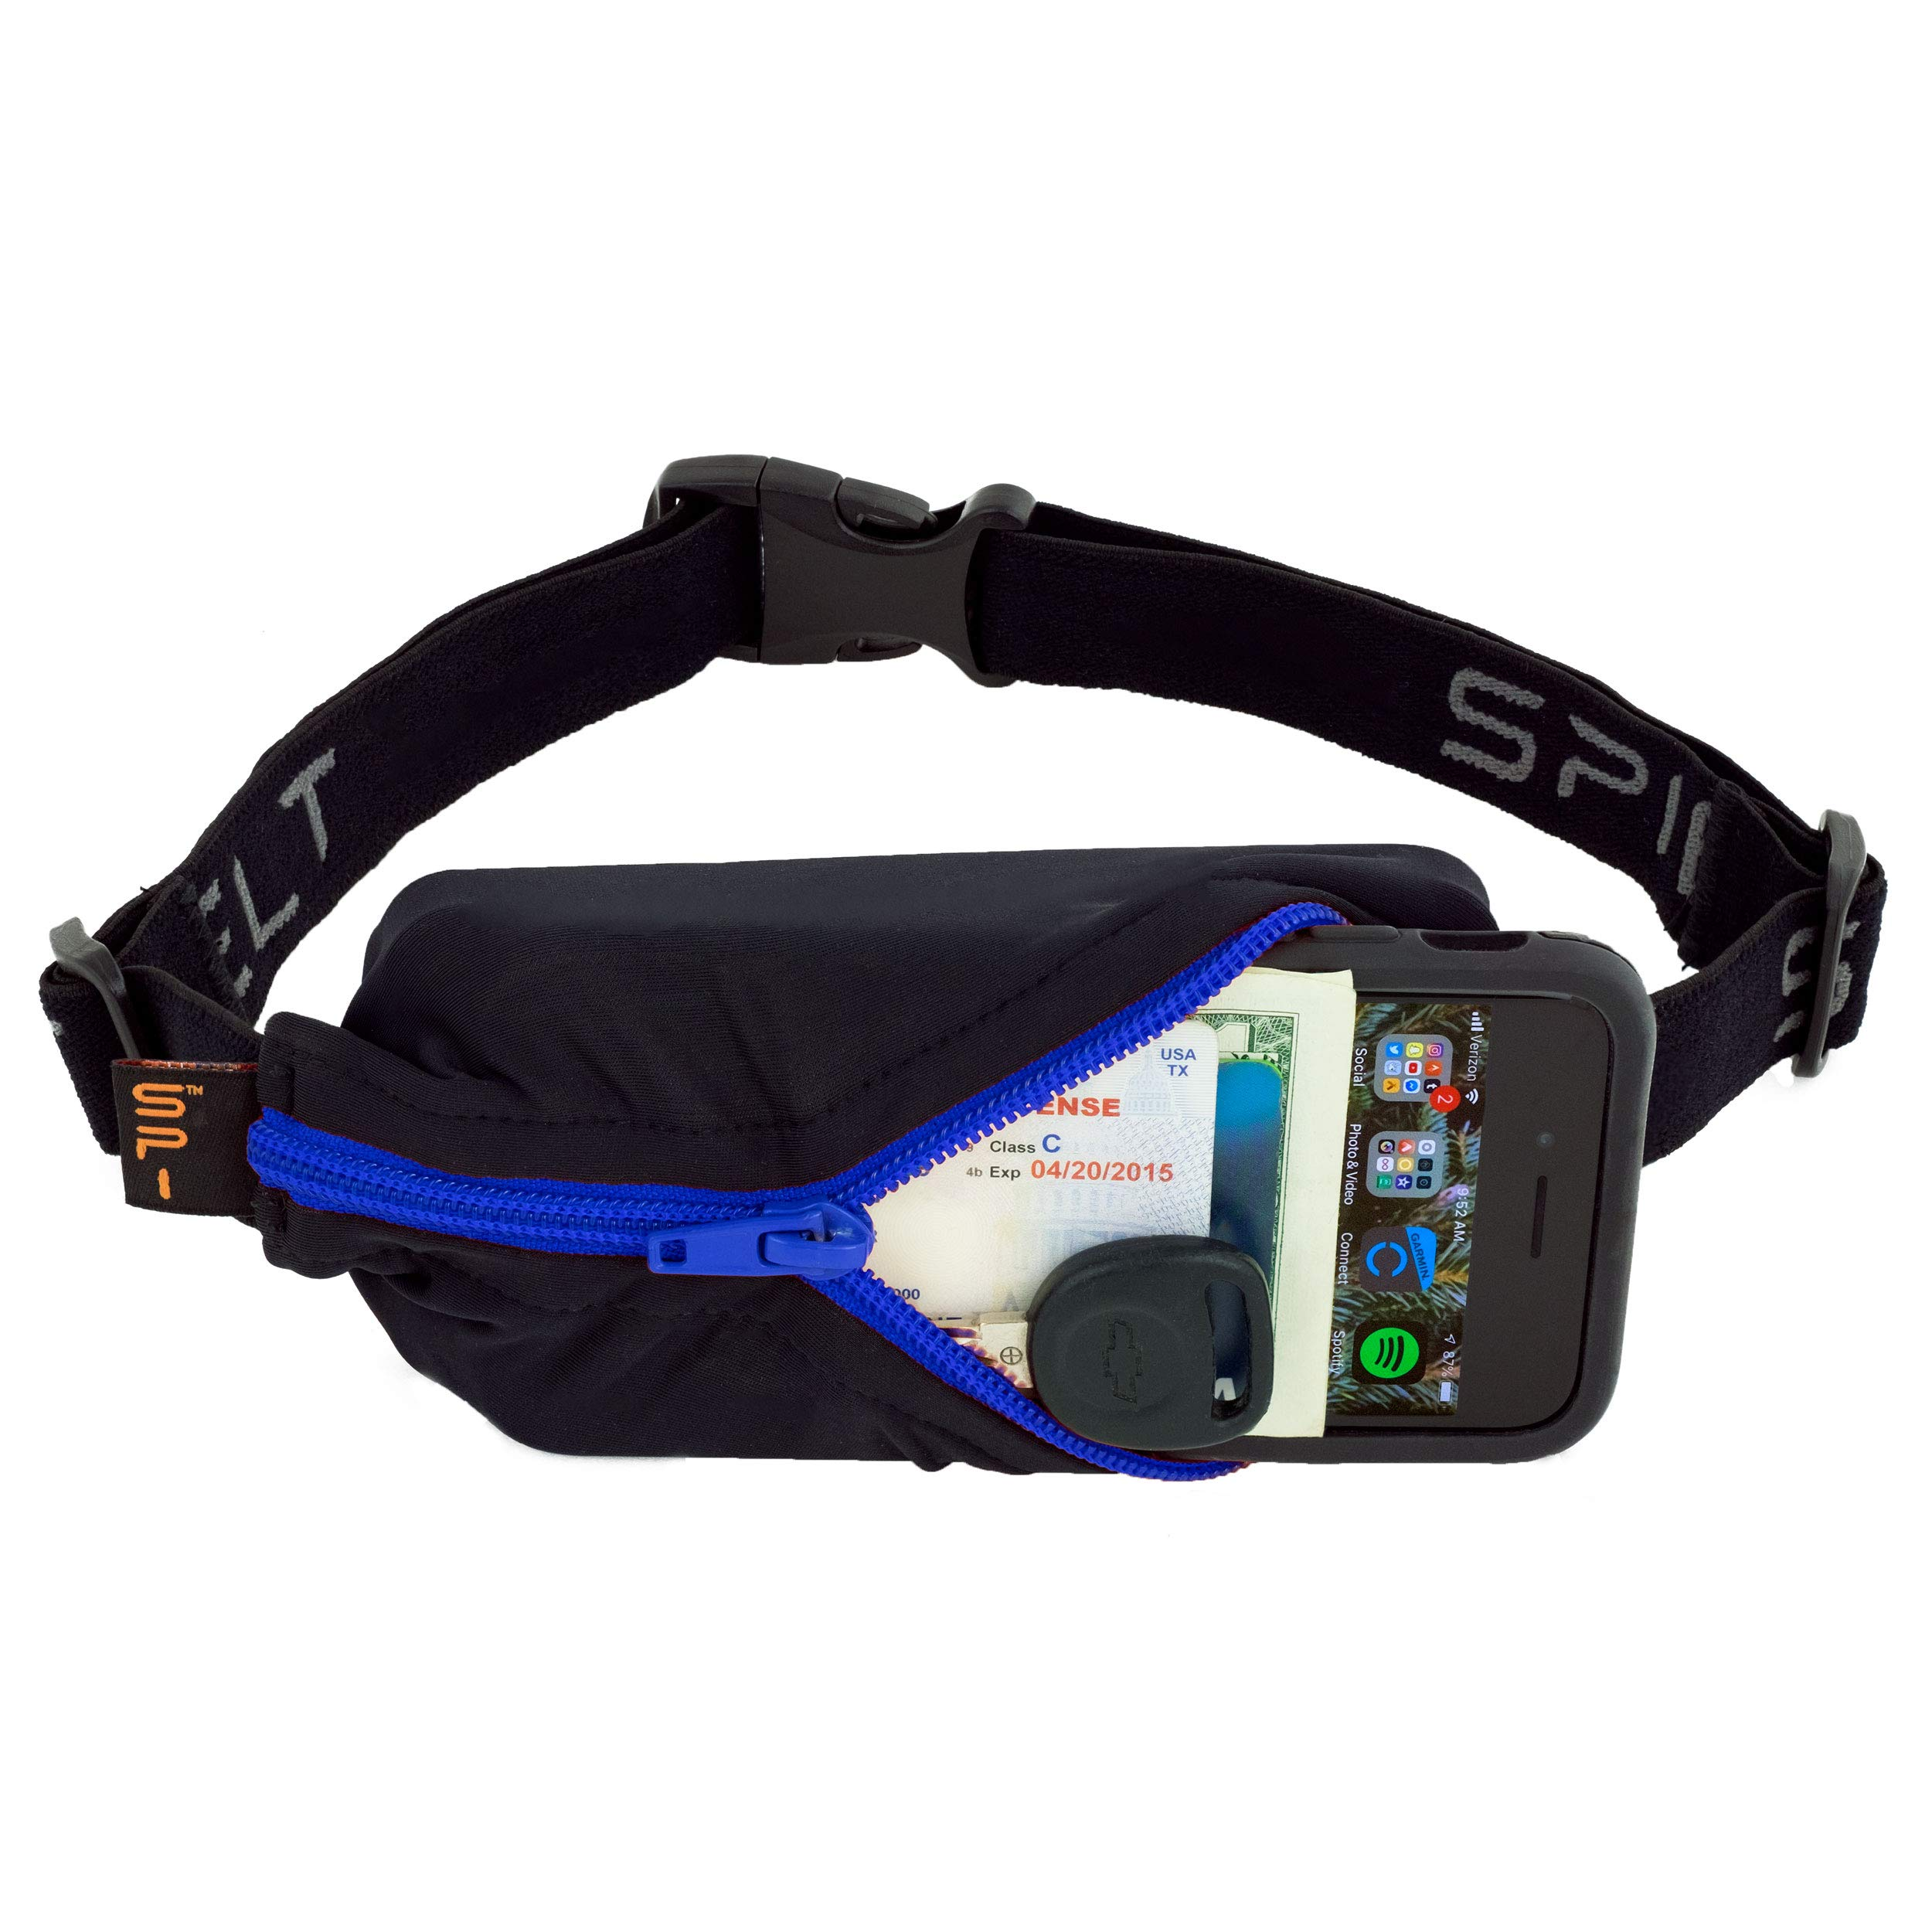 SPIbelt Sports/Running Belt: Original - No-Bounce Running Belt for Runners, Athletes and Adventurers - Fits iPhone 6 and Other Large Phones, Blue Zipper by SPIbelt